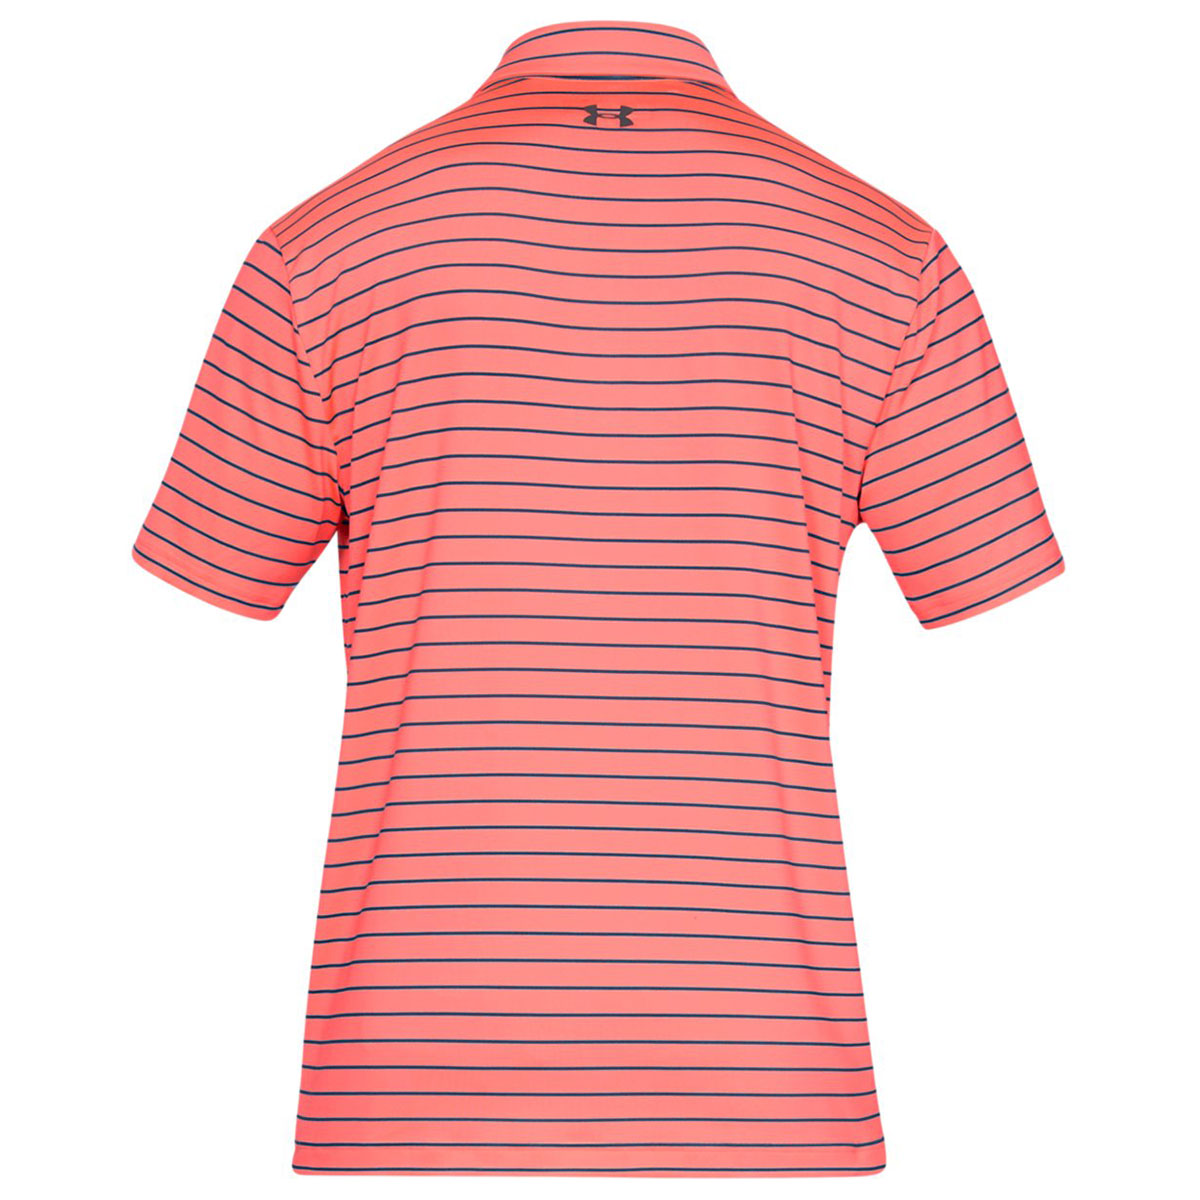 Under-Armour-Mens-2019-Playoff-Polo-2-0-Breathable-Light-Stretch-Polo-Shirt thumbnail 59